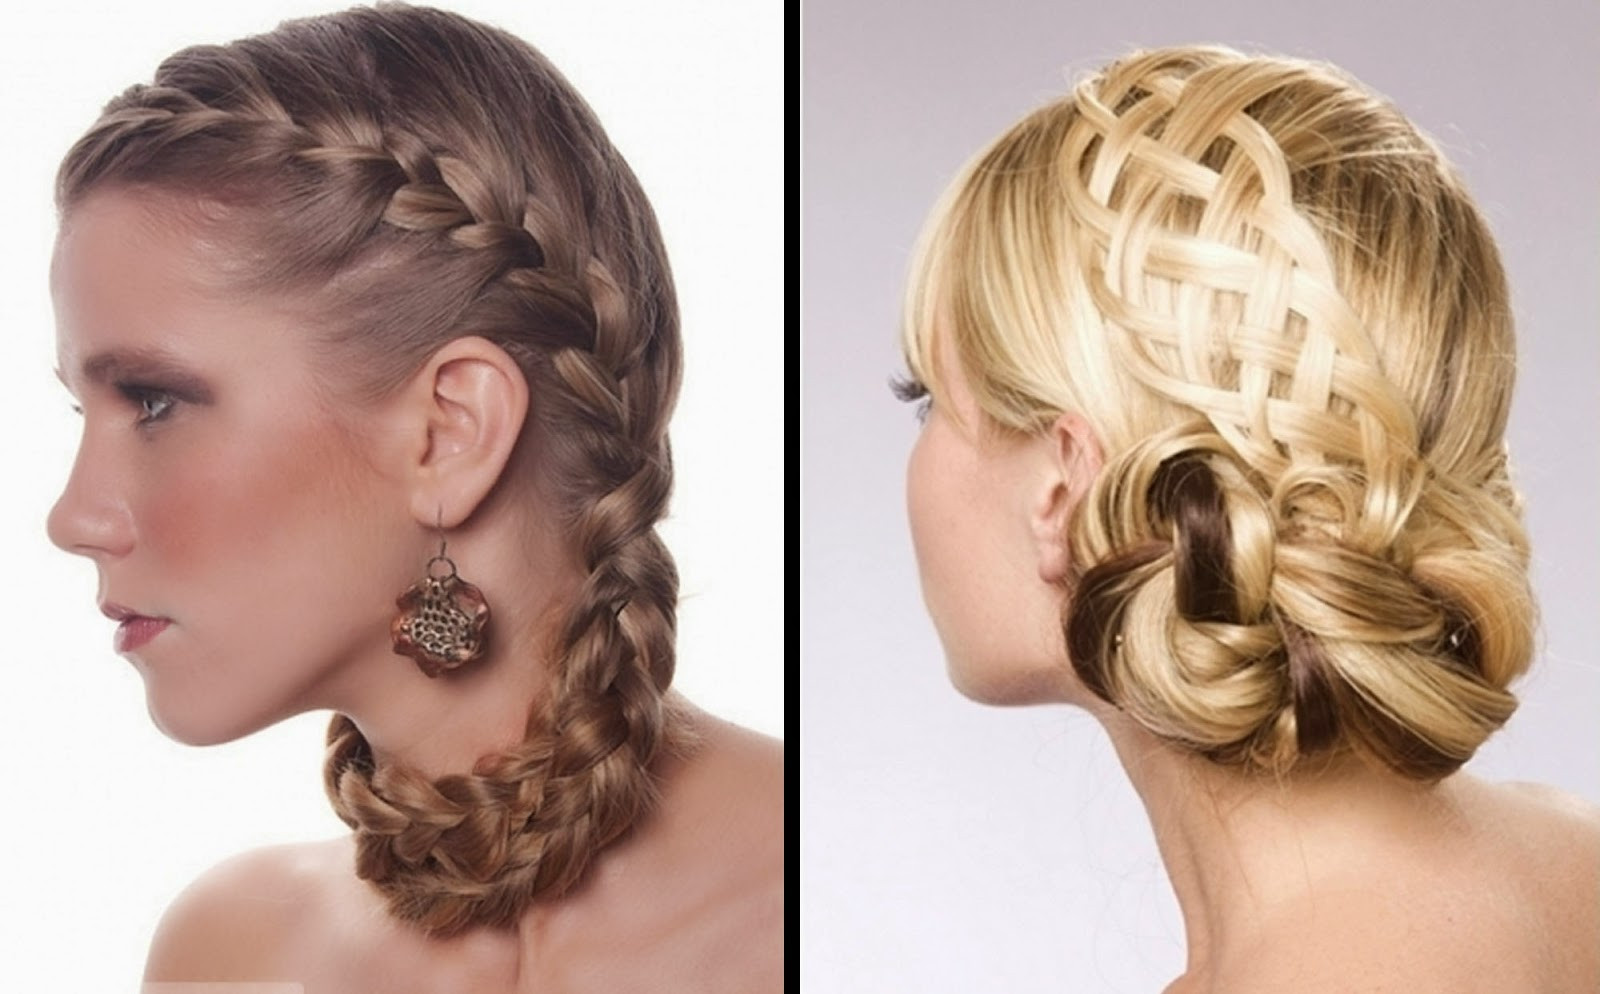 Best ideas about Simple Hairstyles For Prom . Save or Pin 100 Delightful Prom Hairstyles Ideas Haircuts Now.